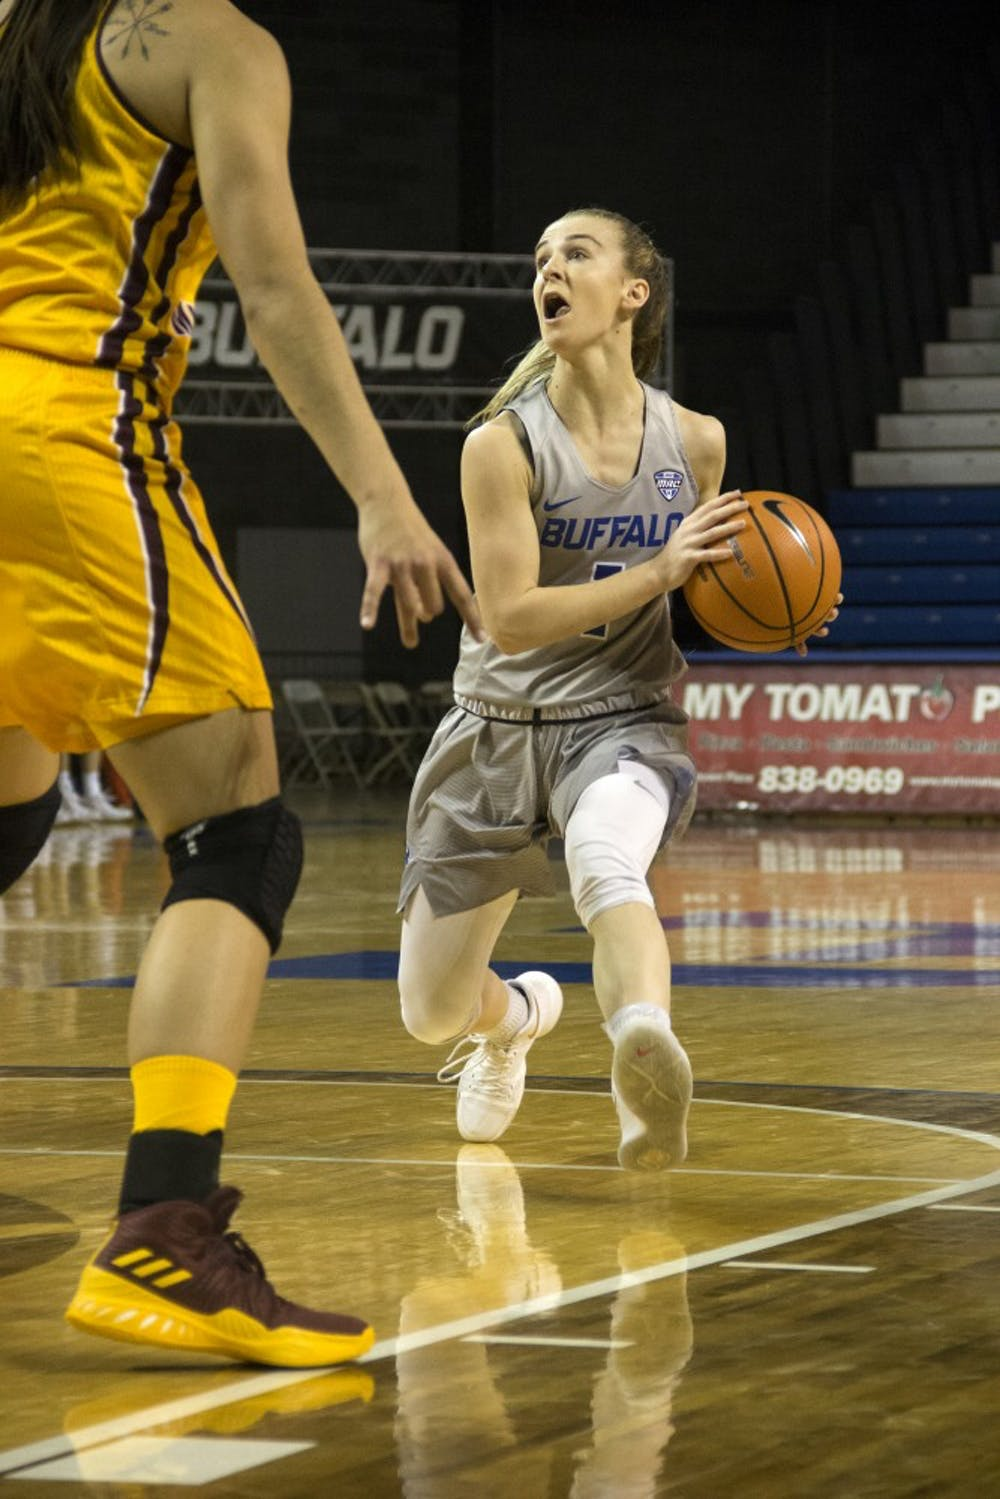 <p>Senior guard Stephanie Reid in the game against the Chippewas. See the results on the back page from Buffalo's big win.</p>